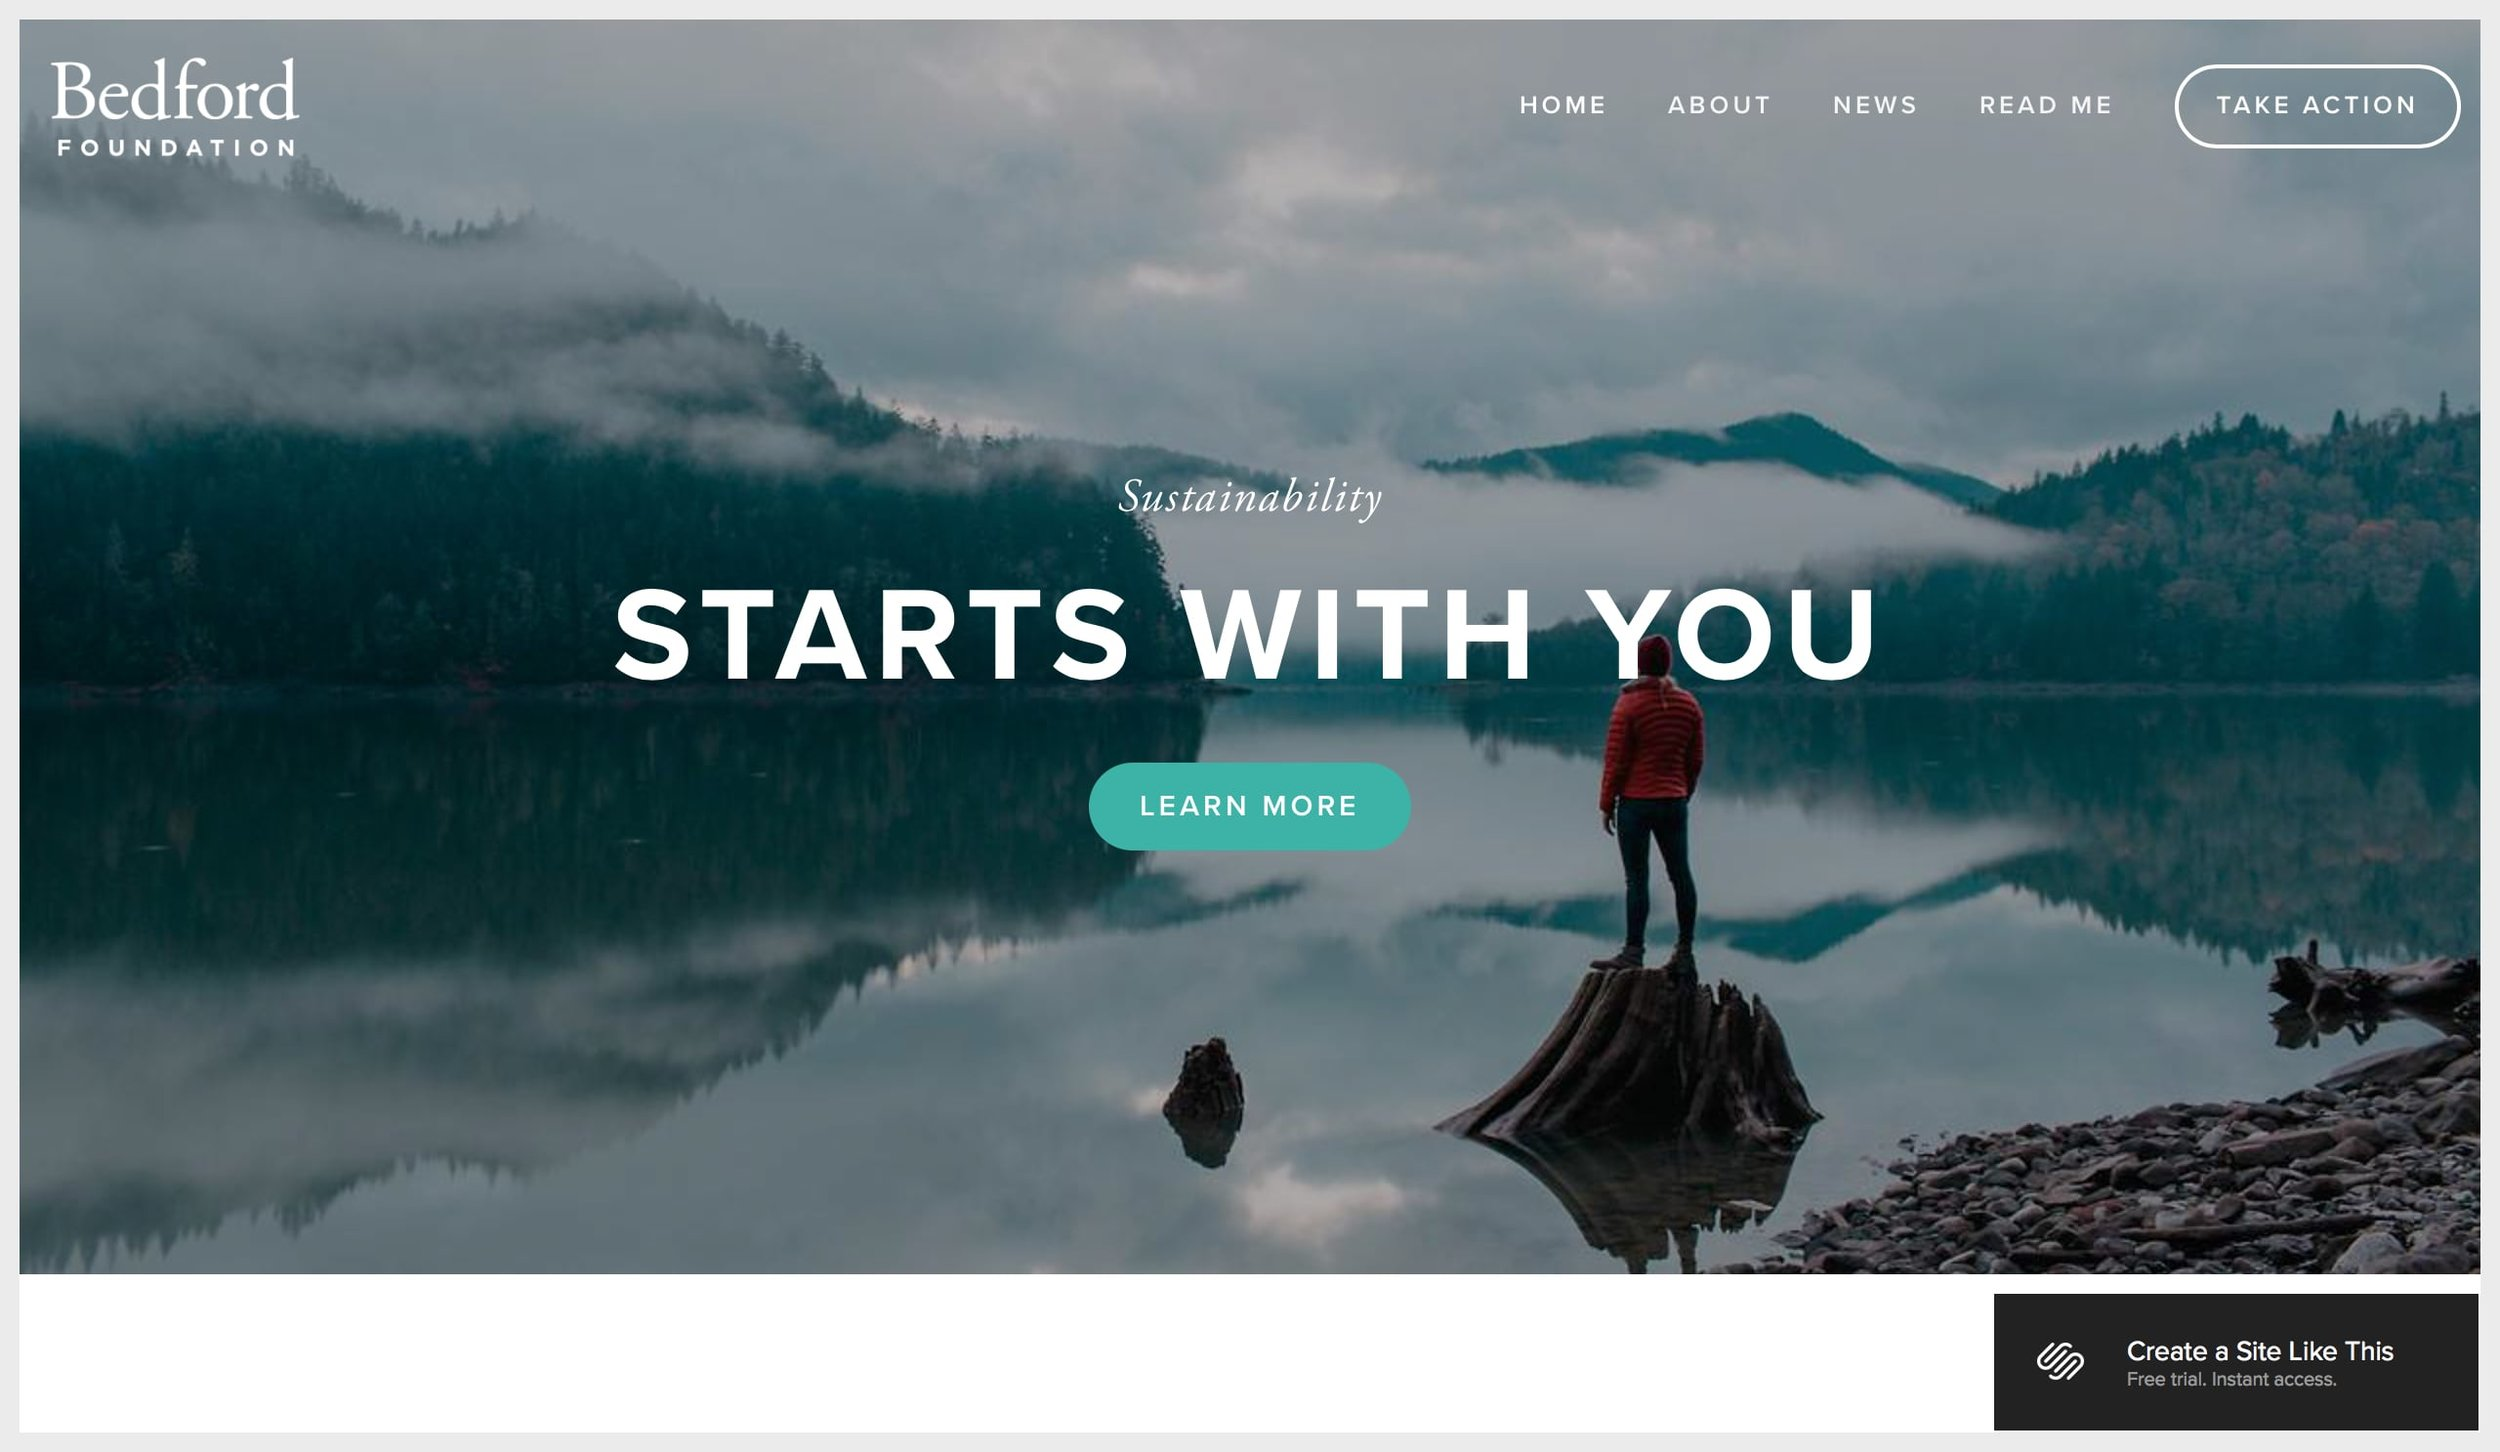 Squarespace's live preview of a template